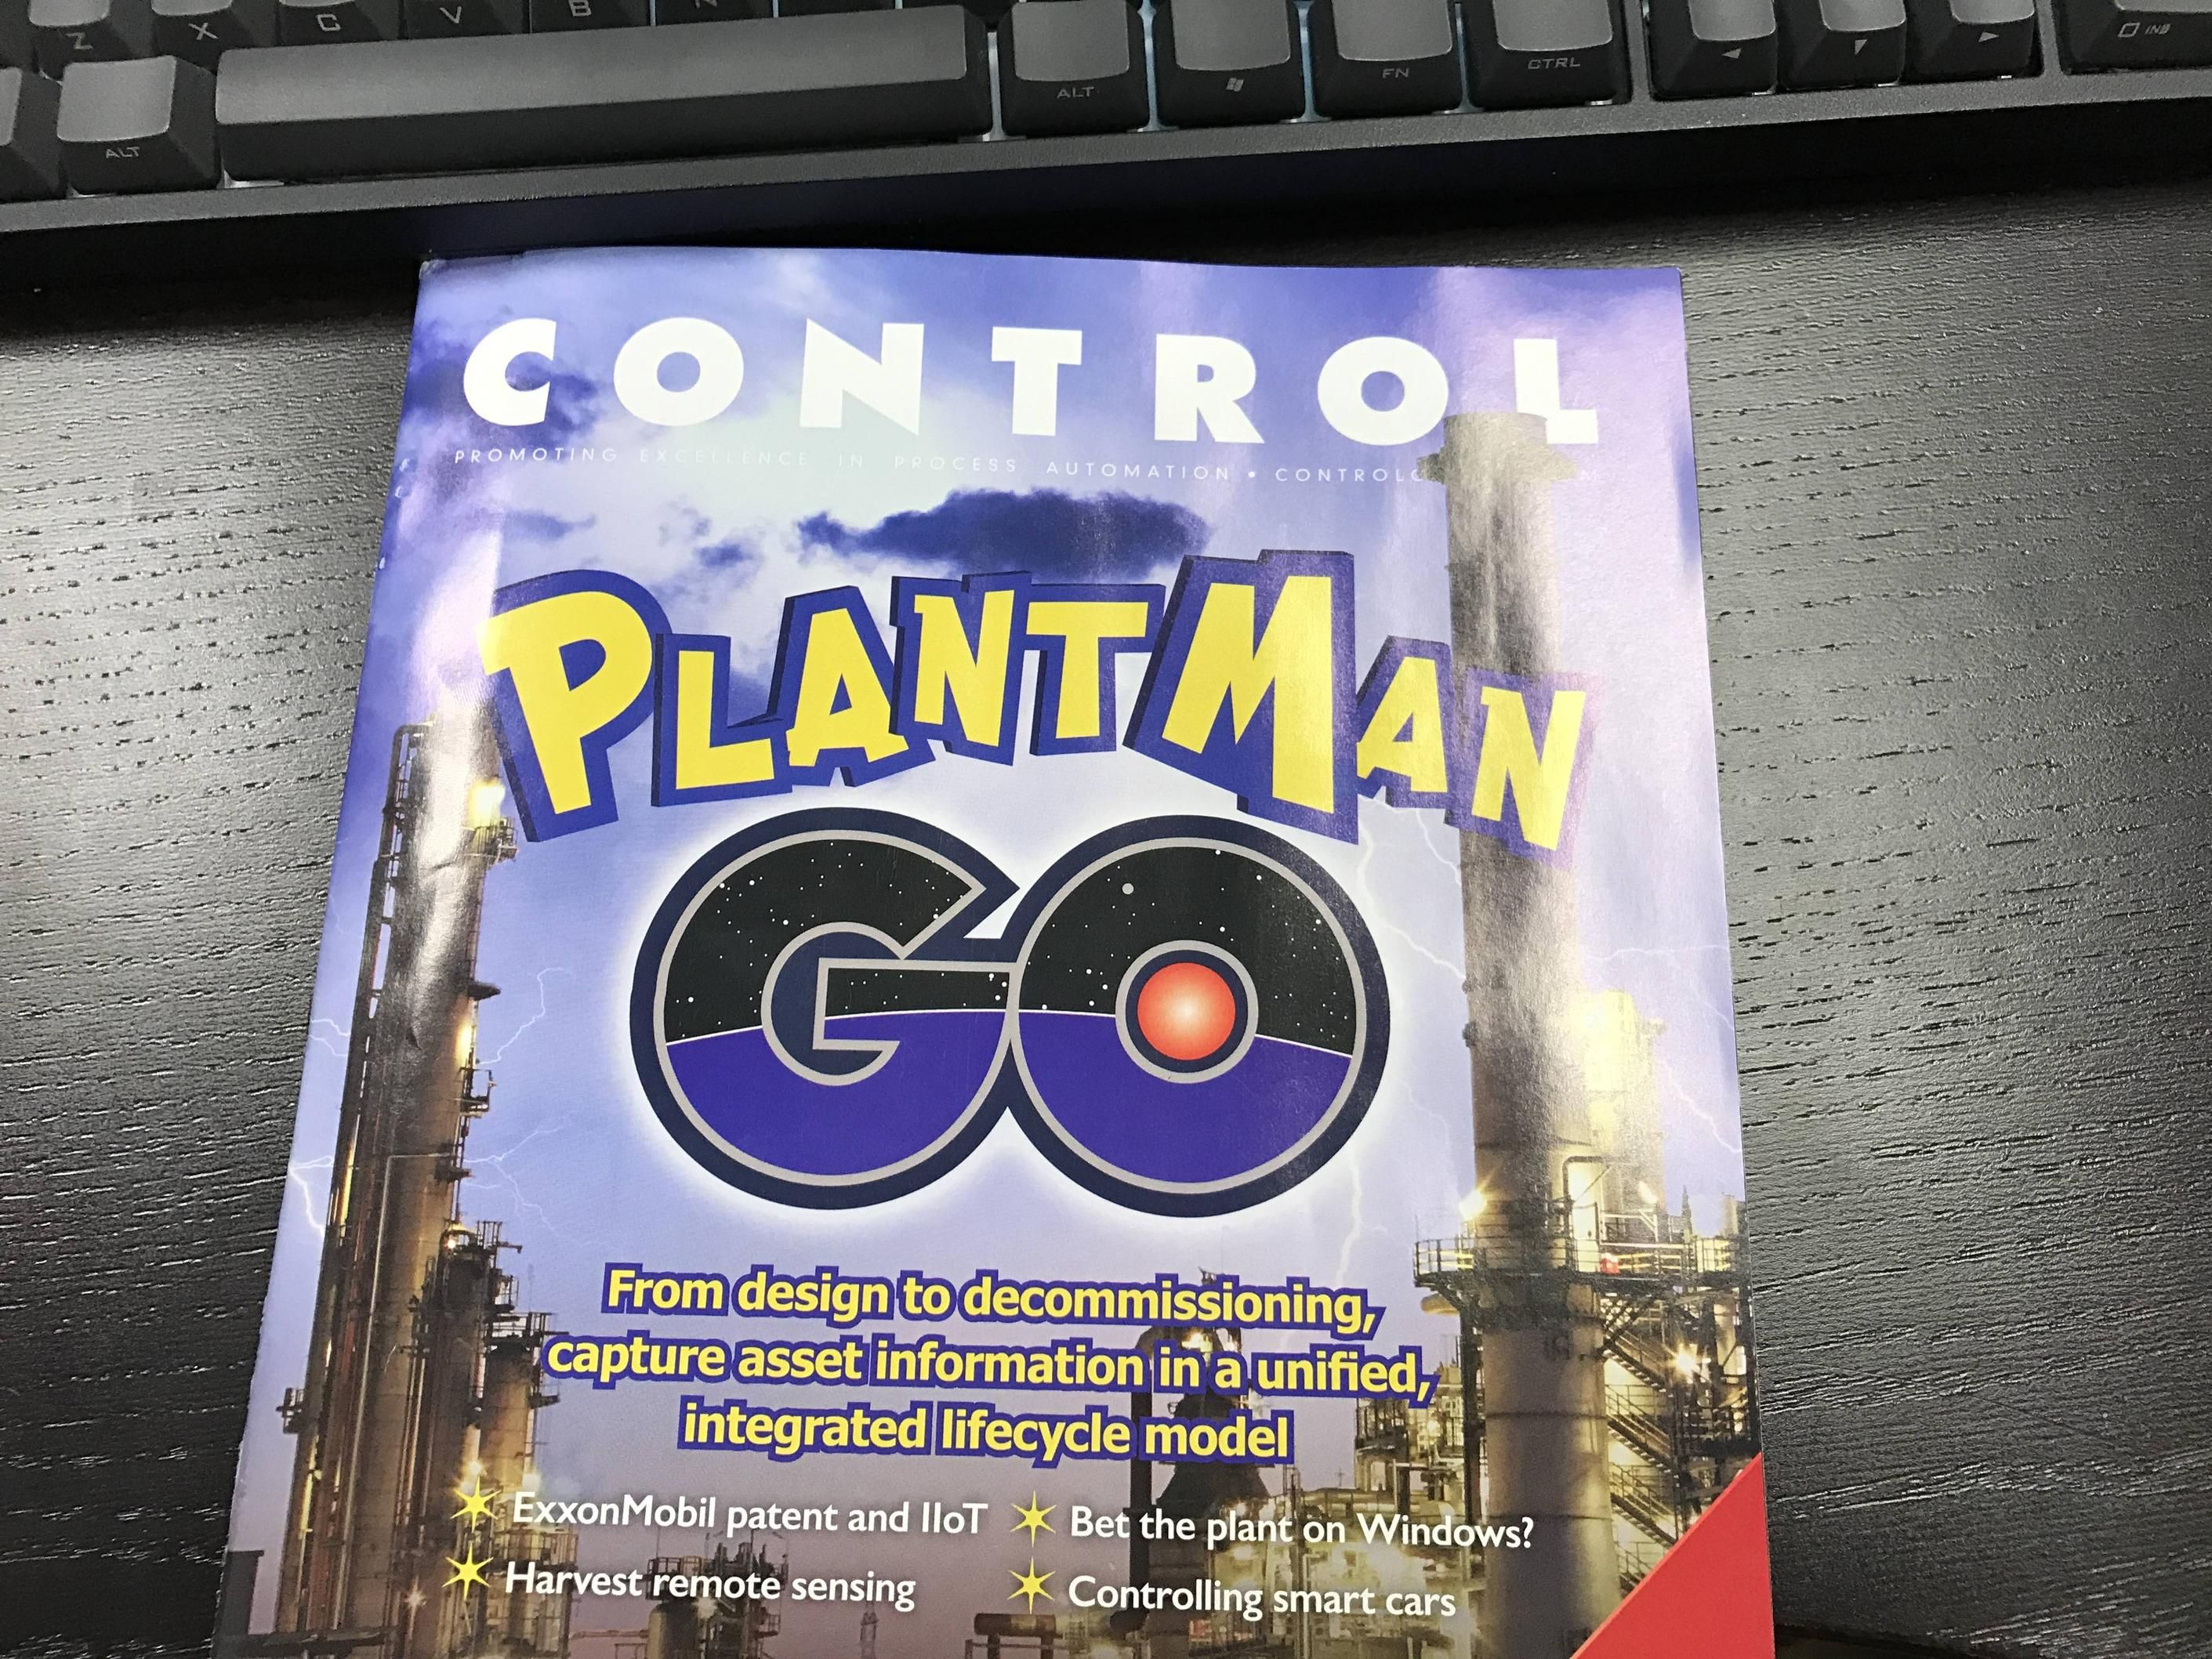 I work in the process control industry and this just came in the mail